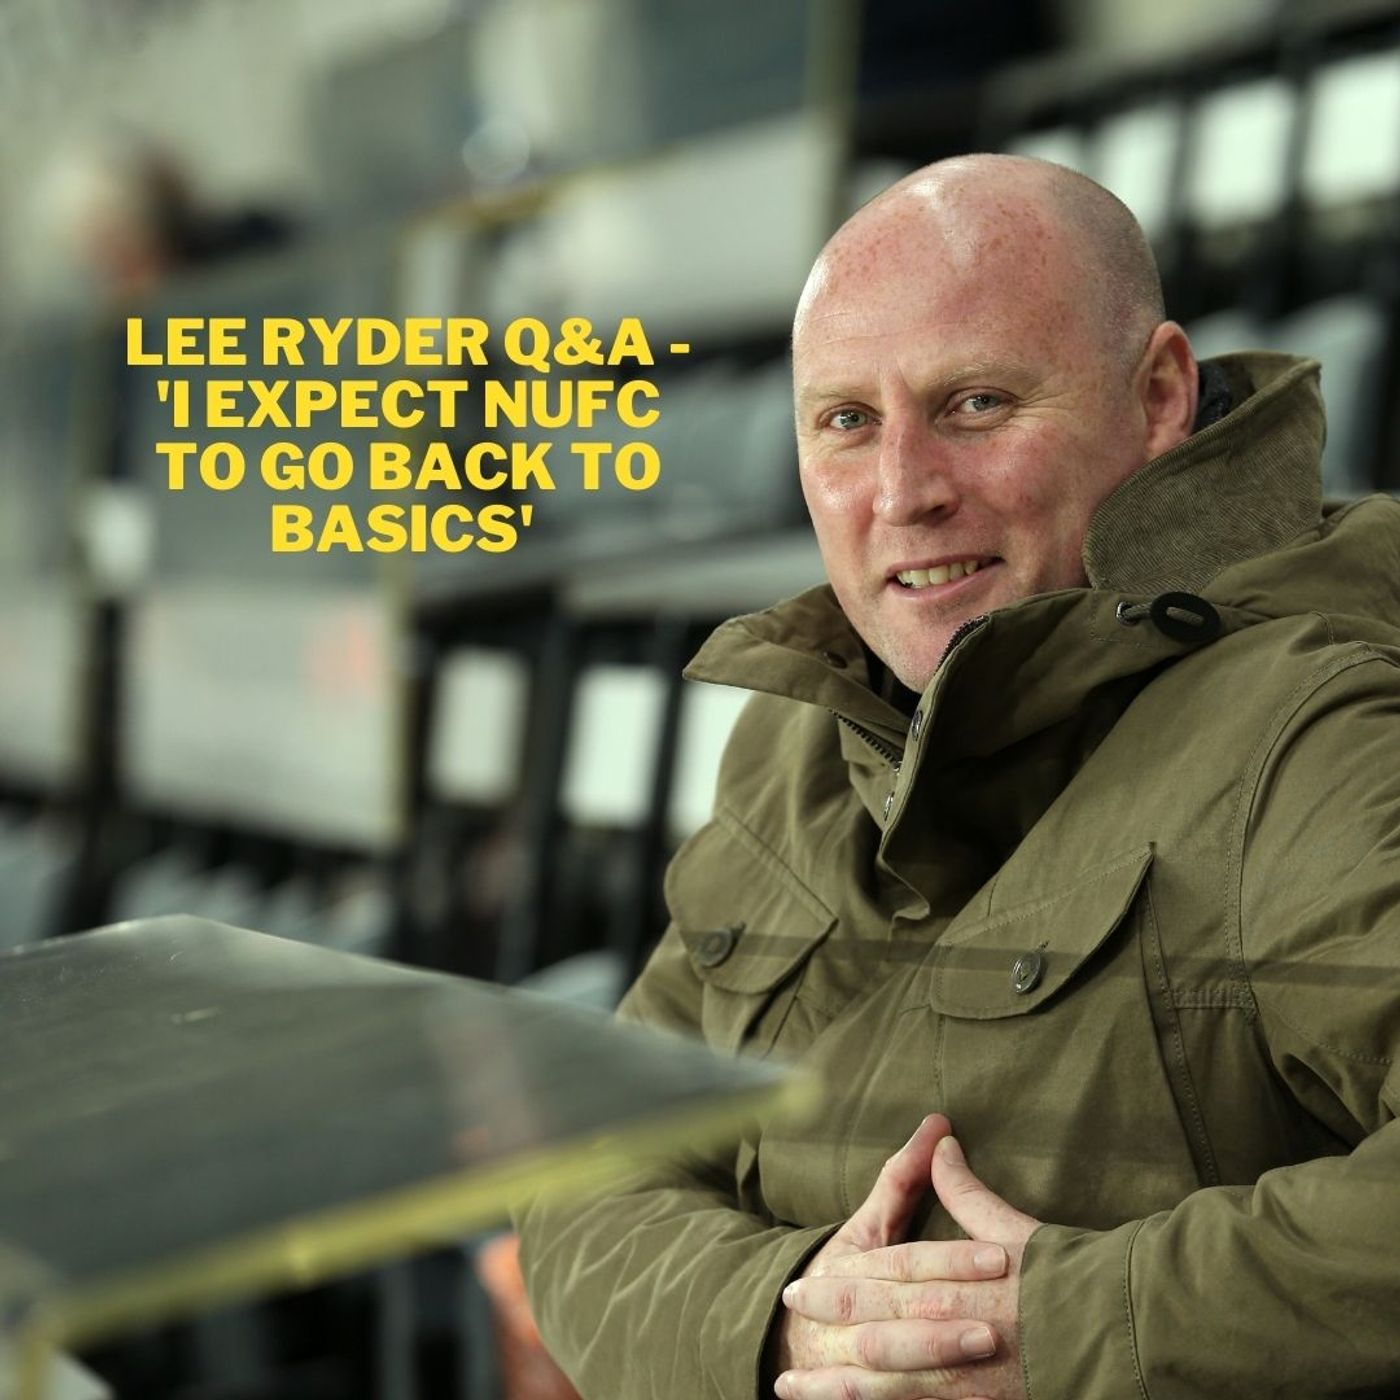 Steve Bruce & 'my way' - Lee Ryder's quickfire Q&A on Bruce's press conference